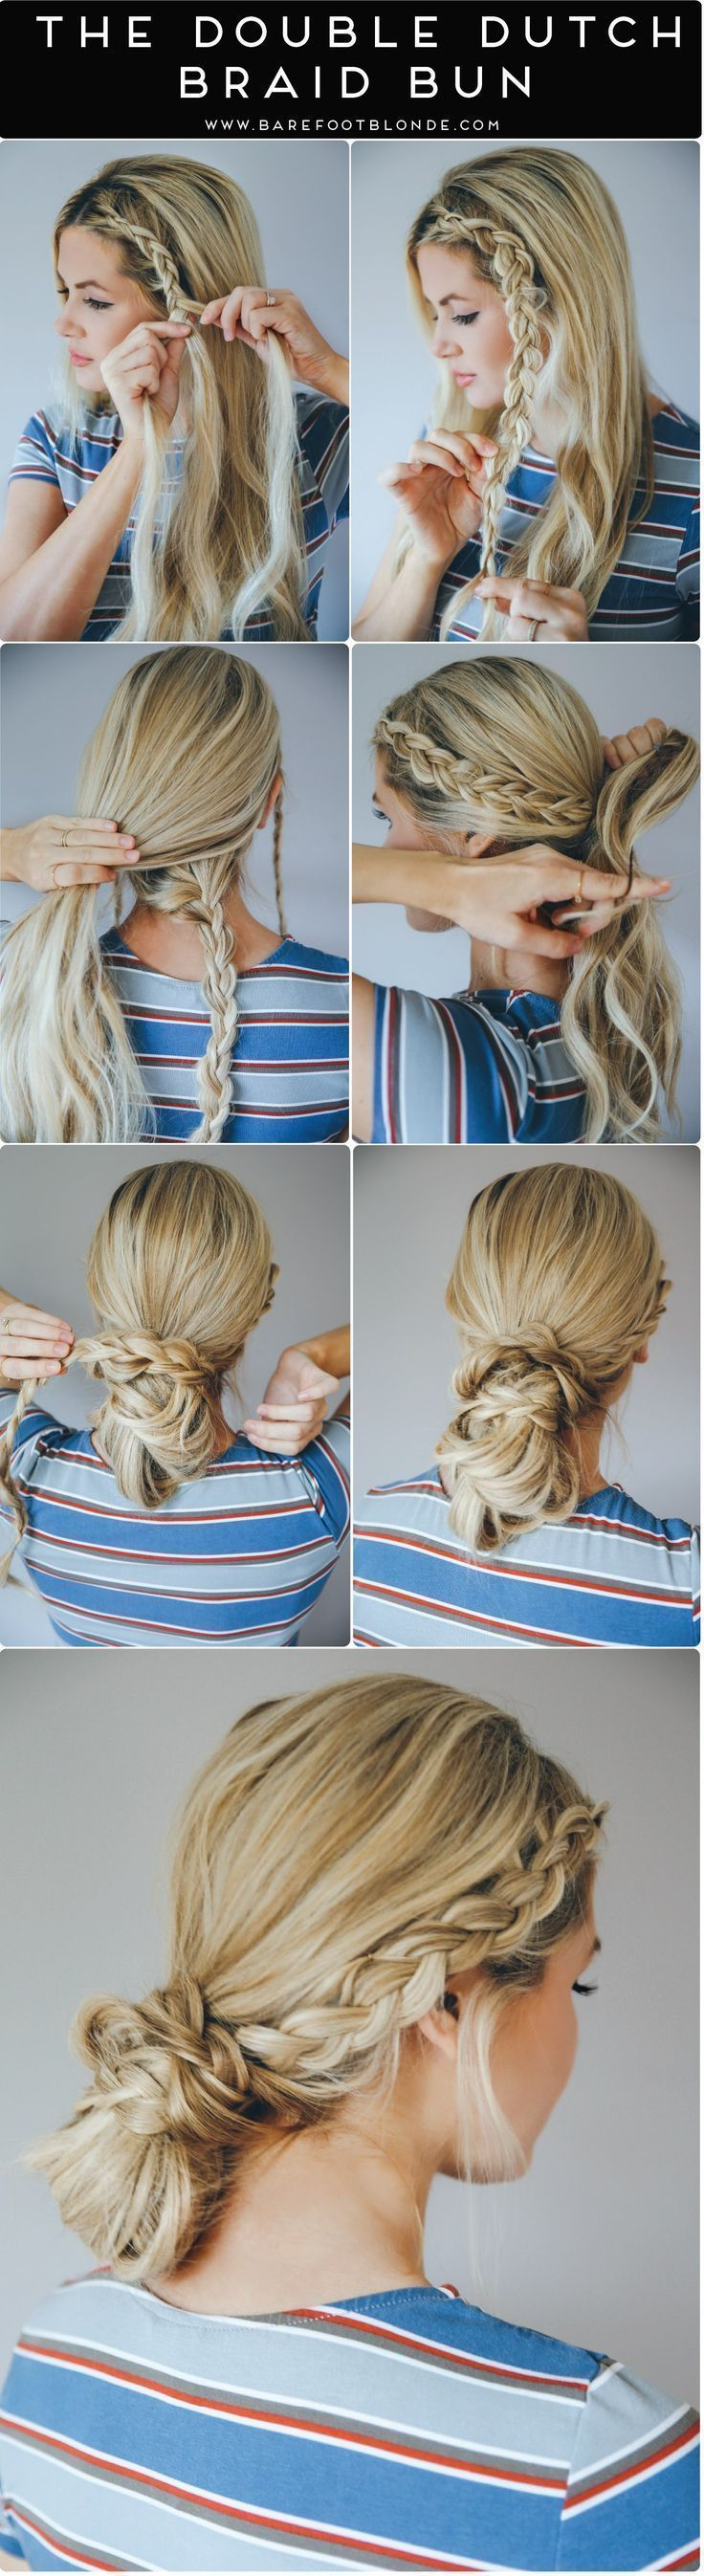 8 Easy Braids That Will Fix Any Bad Hair Day - DIYbunker